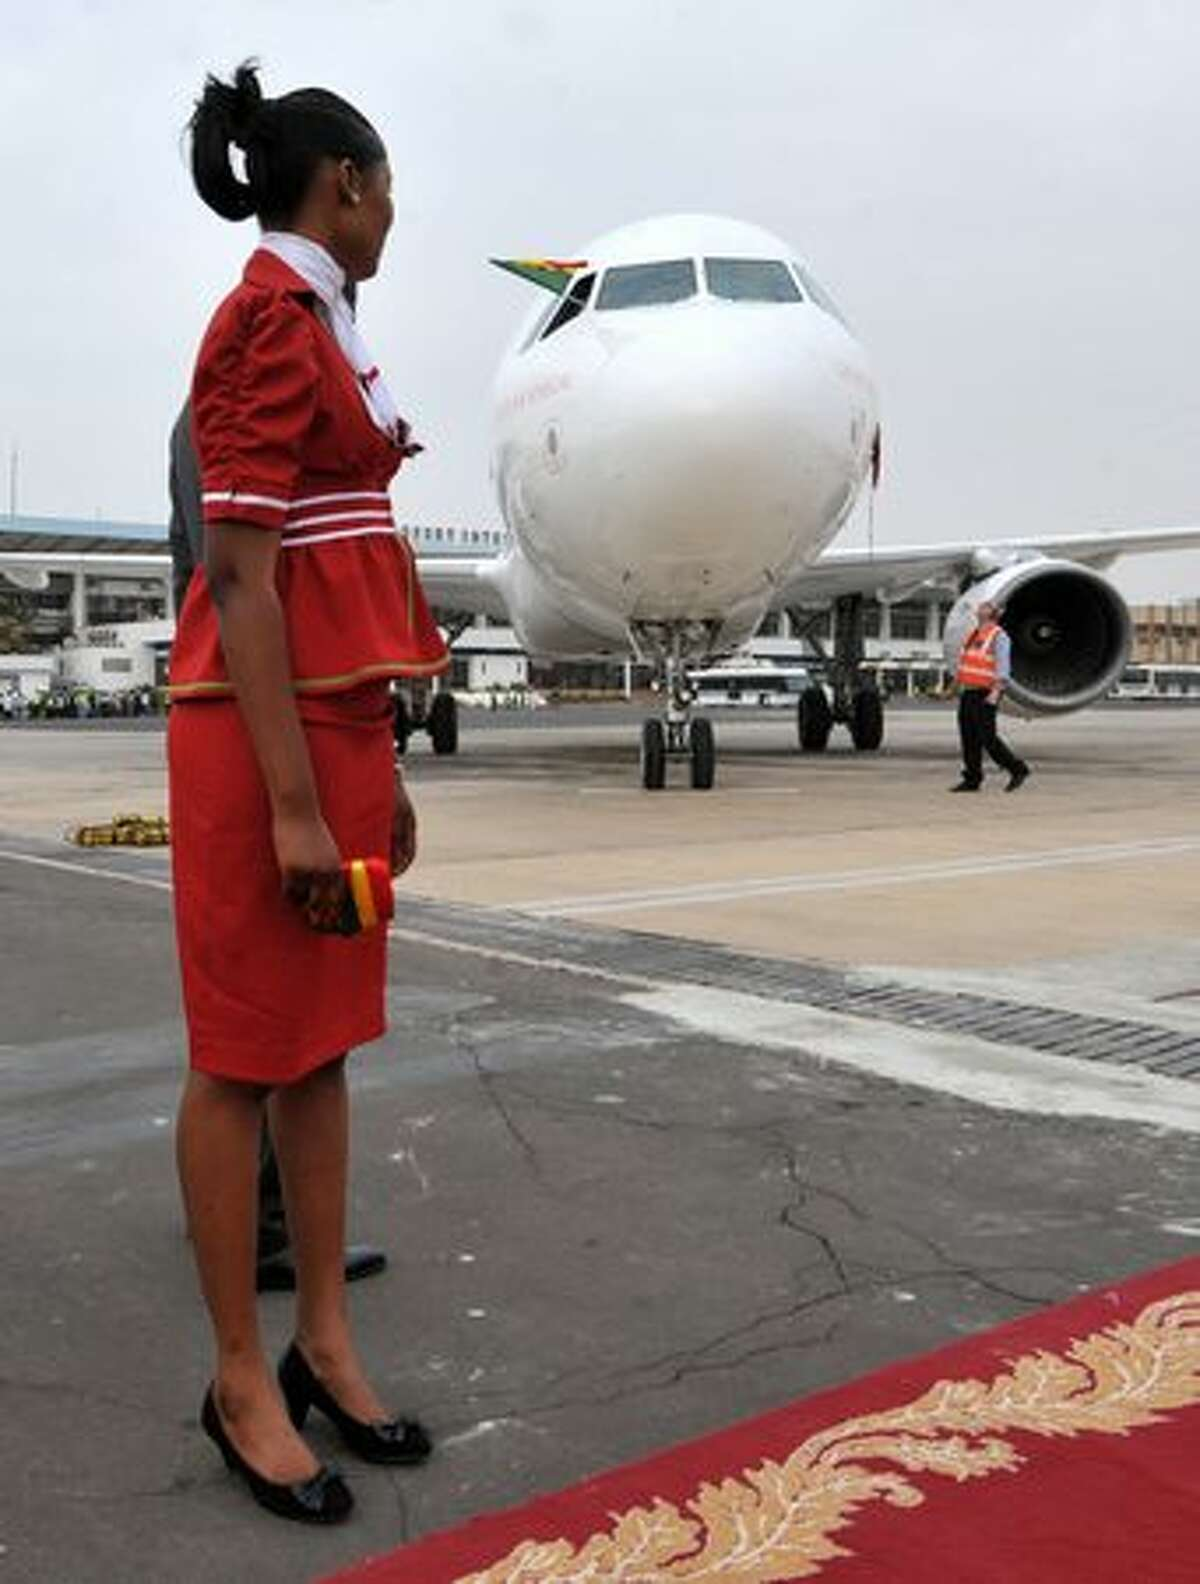 A flight attendant stands in front of a Senegal Airlines Airbus A320 in Dakar. The airline plans to launch its first flight on January 25, 2011.